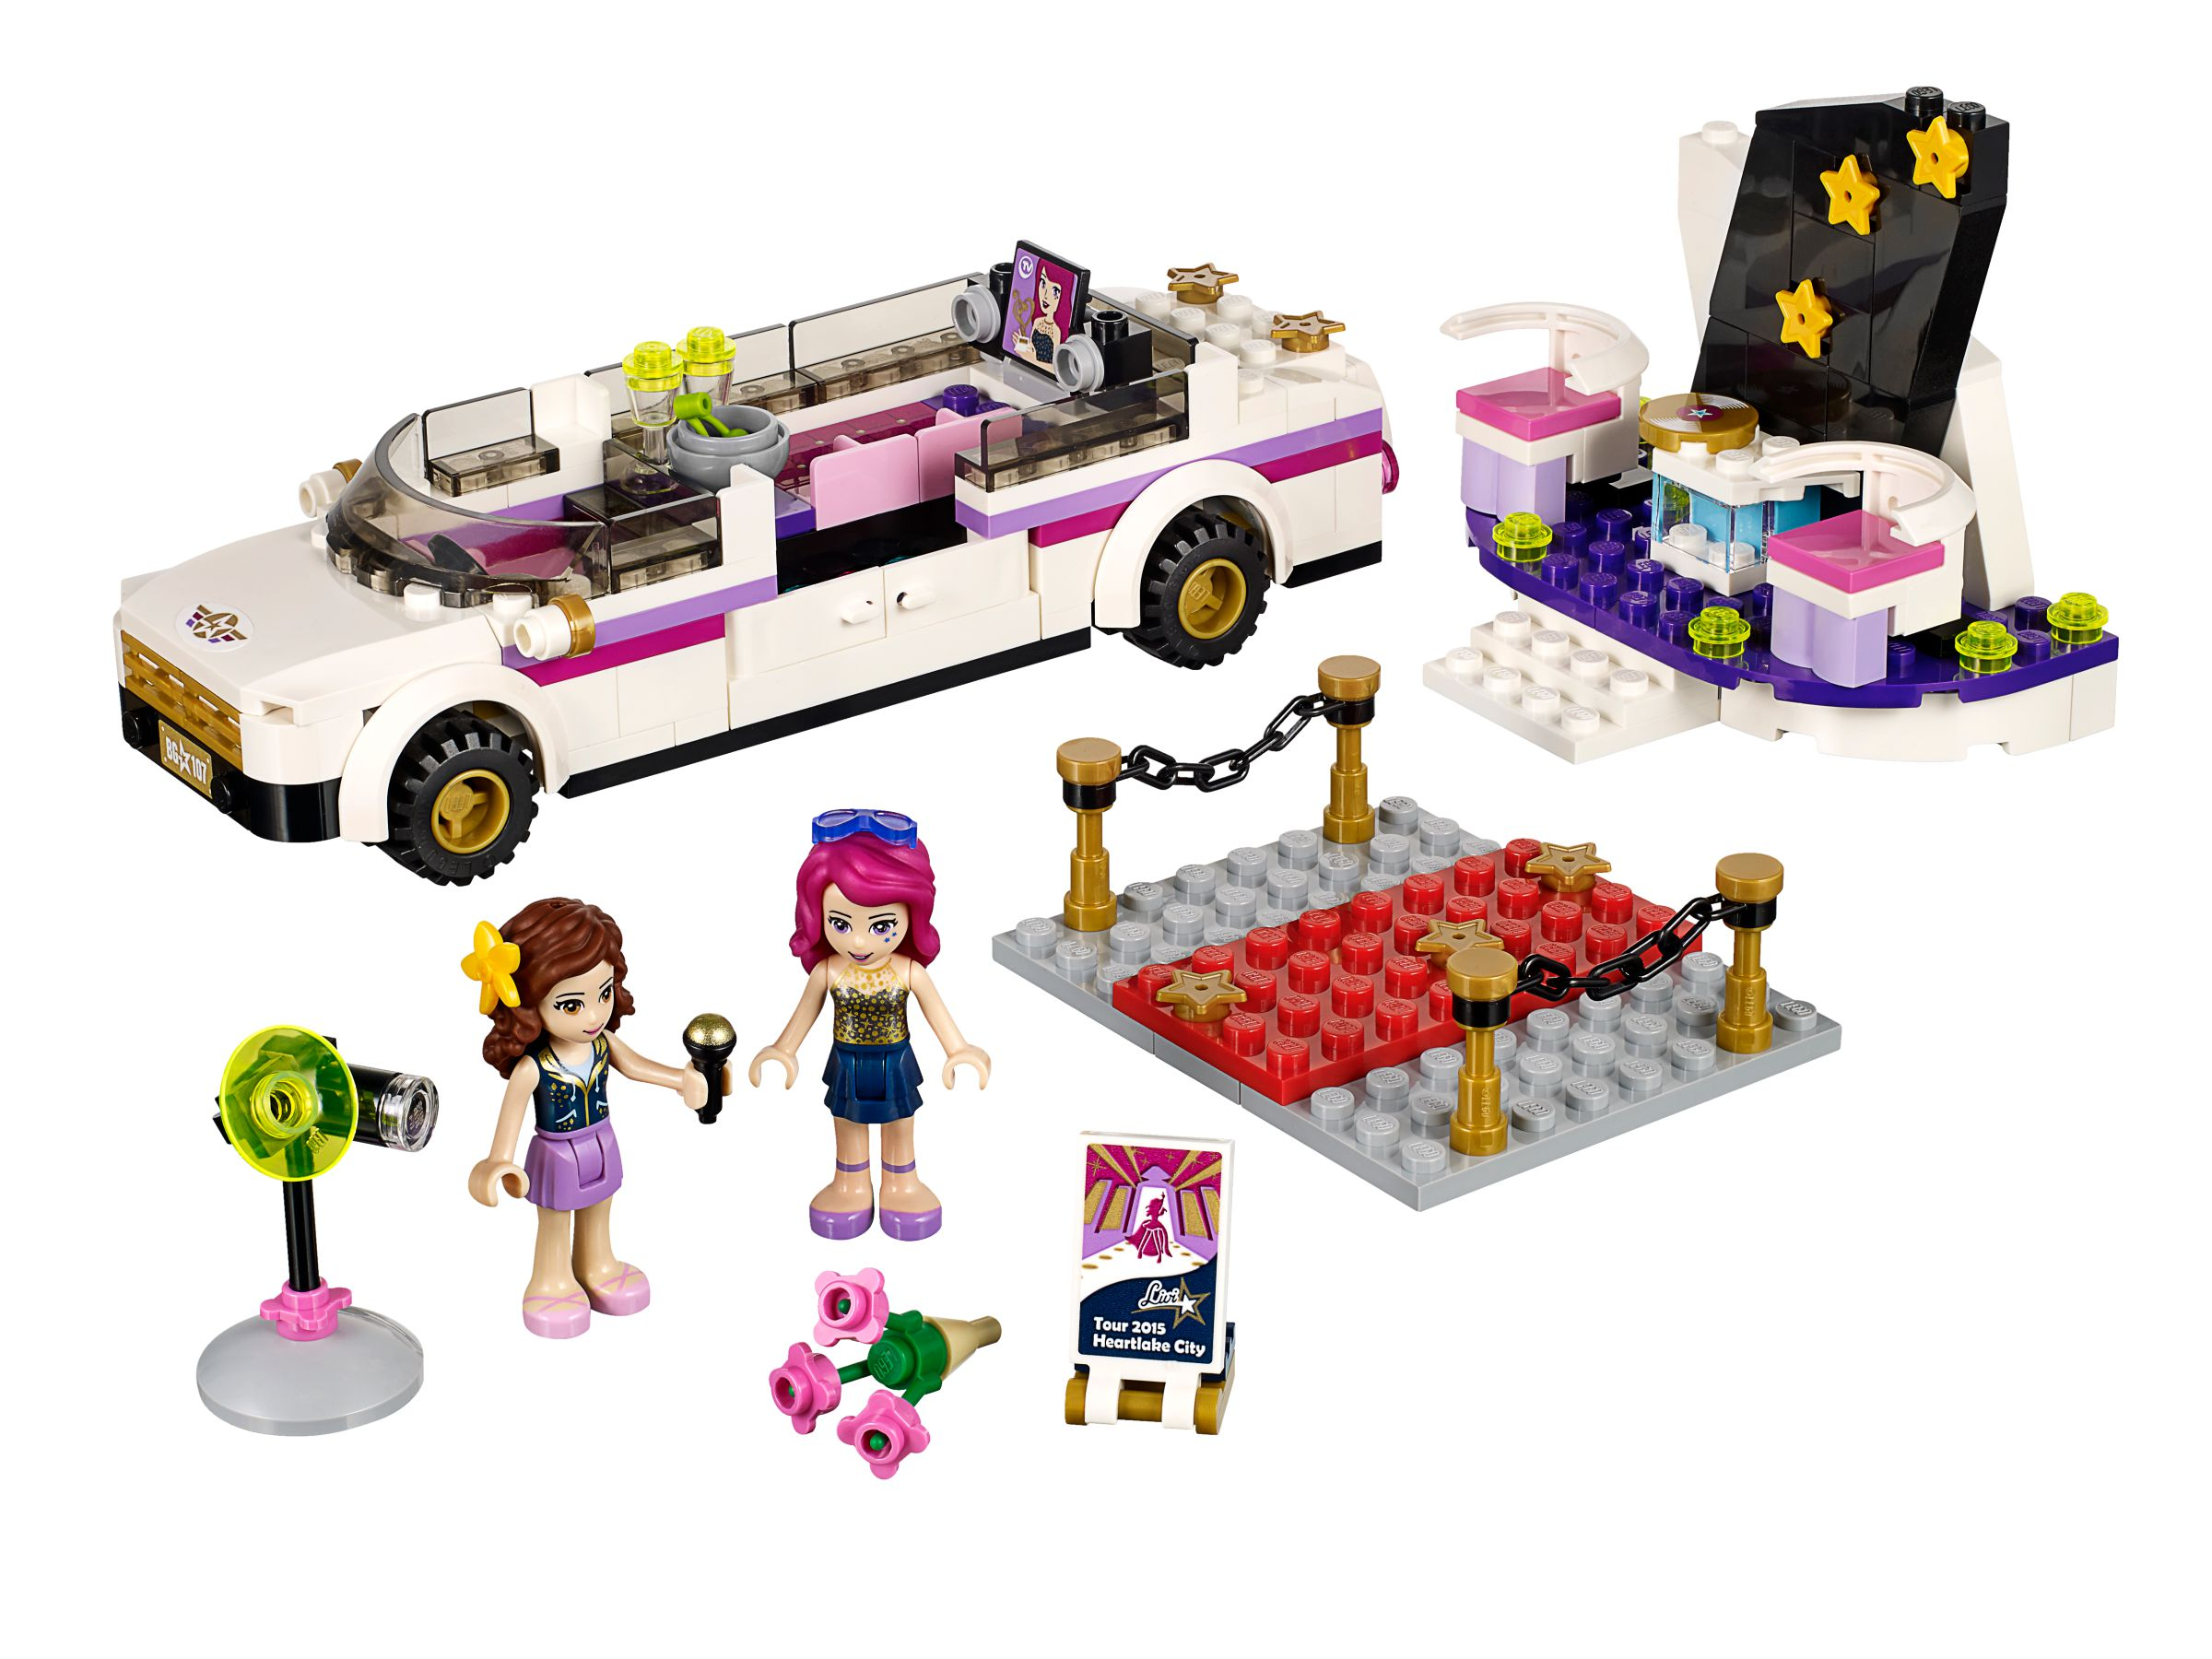 lego friends 41107 popstar limousine brickmerge preisvergleich. Black Bedroom Furniture Sets. Home Design Ideas